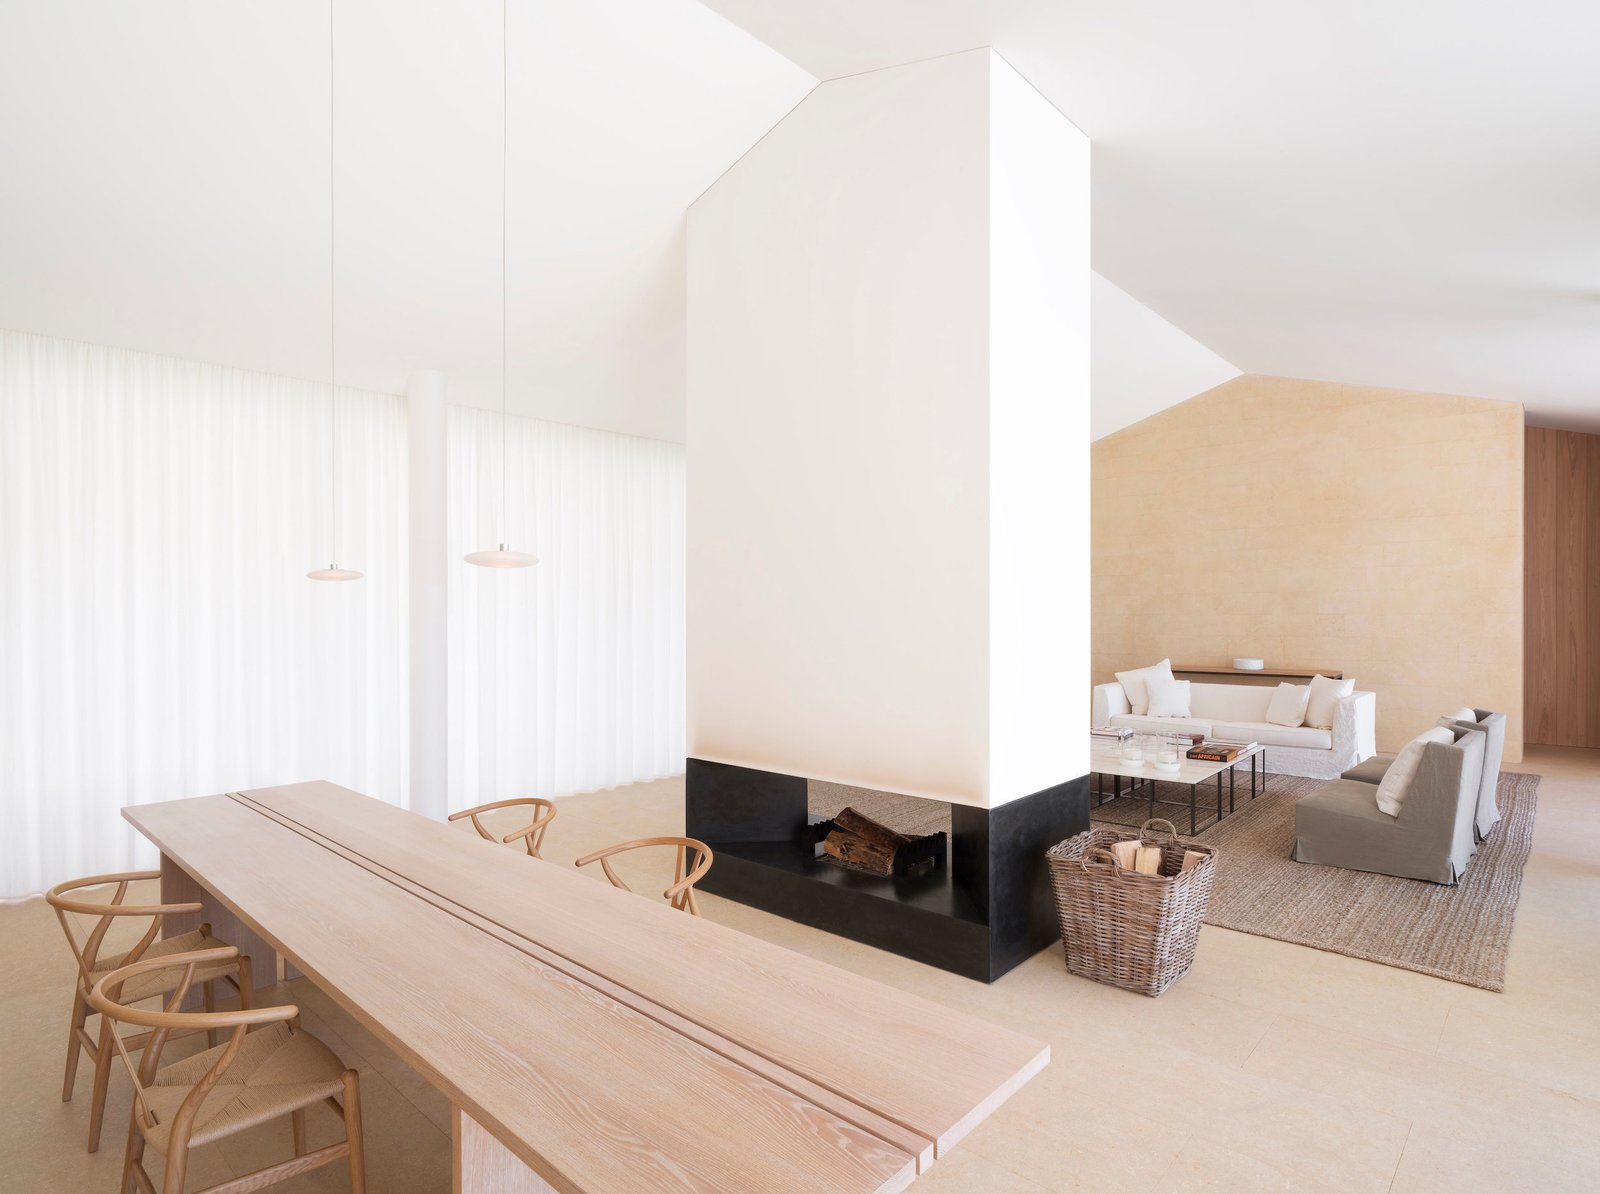 Nestled in the private residential estate of Les Parcs de Saint Tropez, this contemporary home was created by the London-based minimalist designer, John Pawson. Clean lines and bright white walls frame the freestanding fireplace, making for a dynamic open living space where the fireplace acts as the heart of the room.  97+ Modern Fireplace Ideas from Proof That a Modern Fireplace Can Be the Defining Factor of a Space